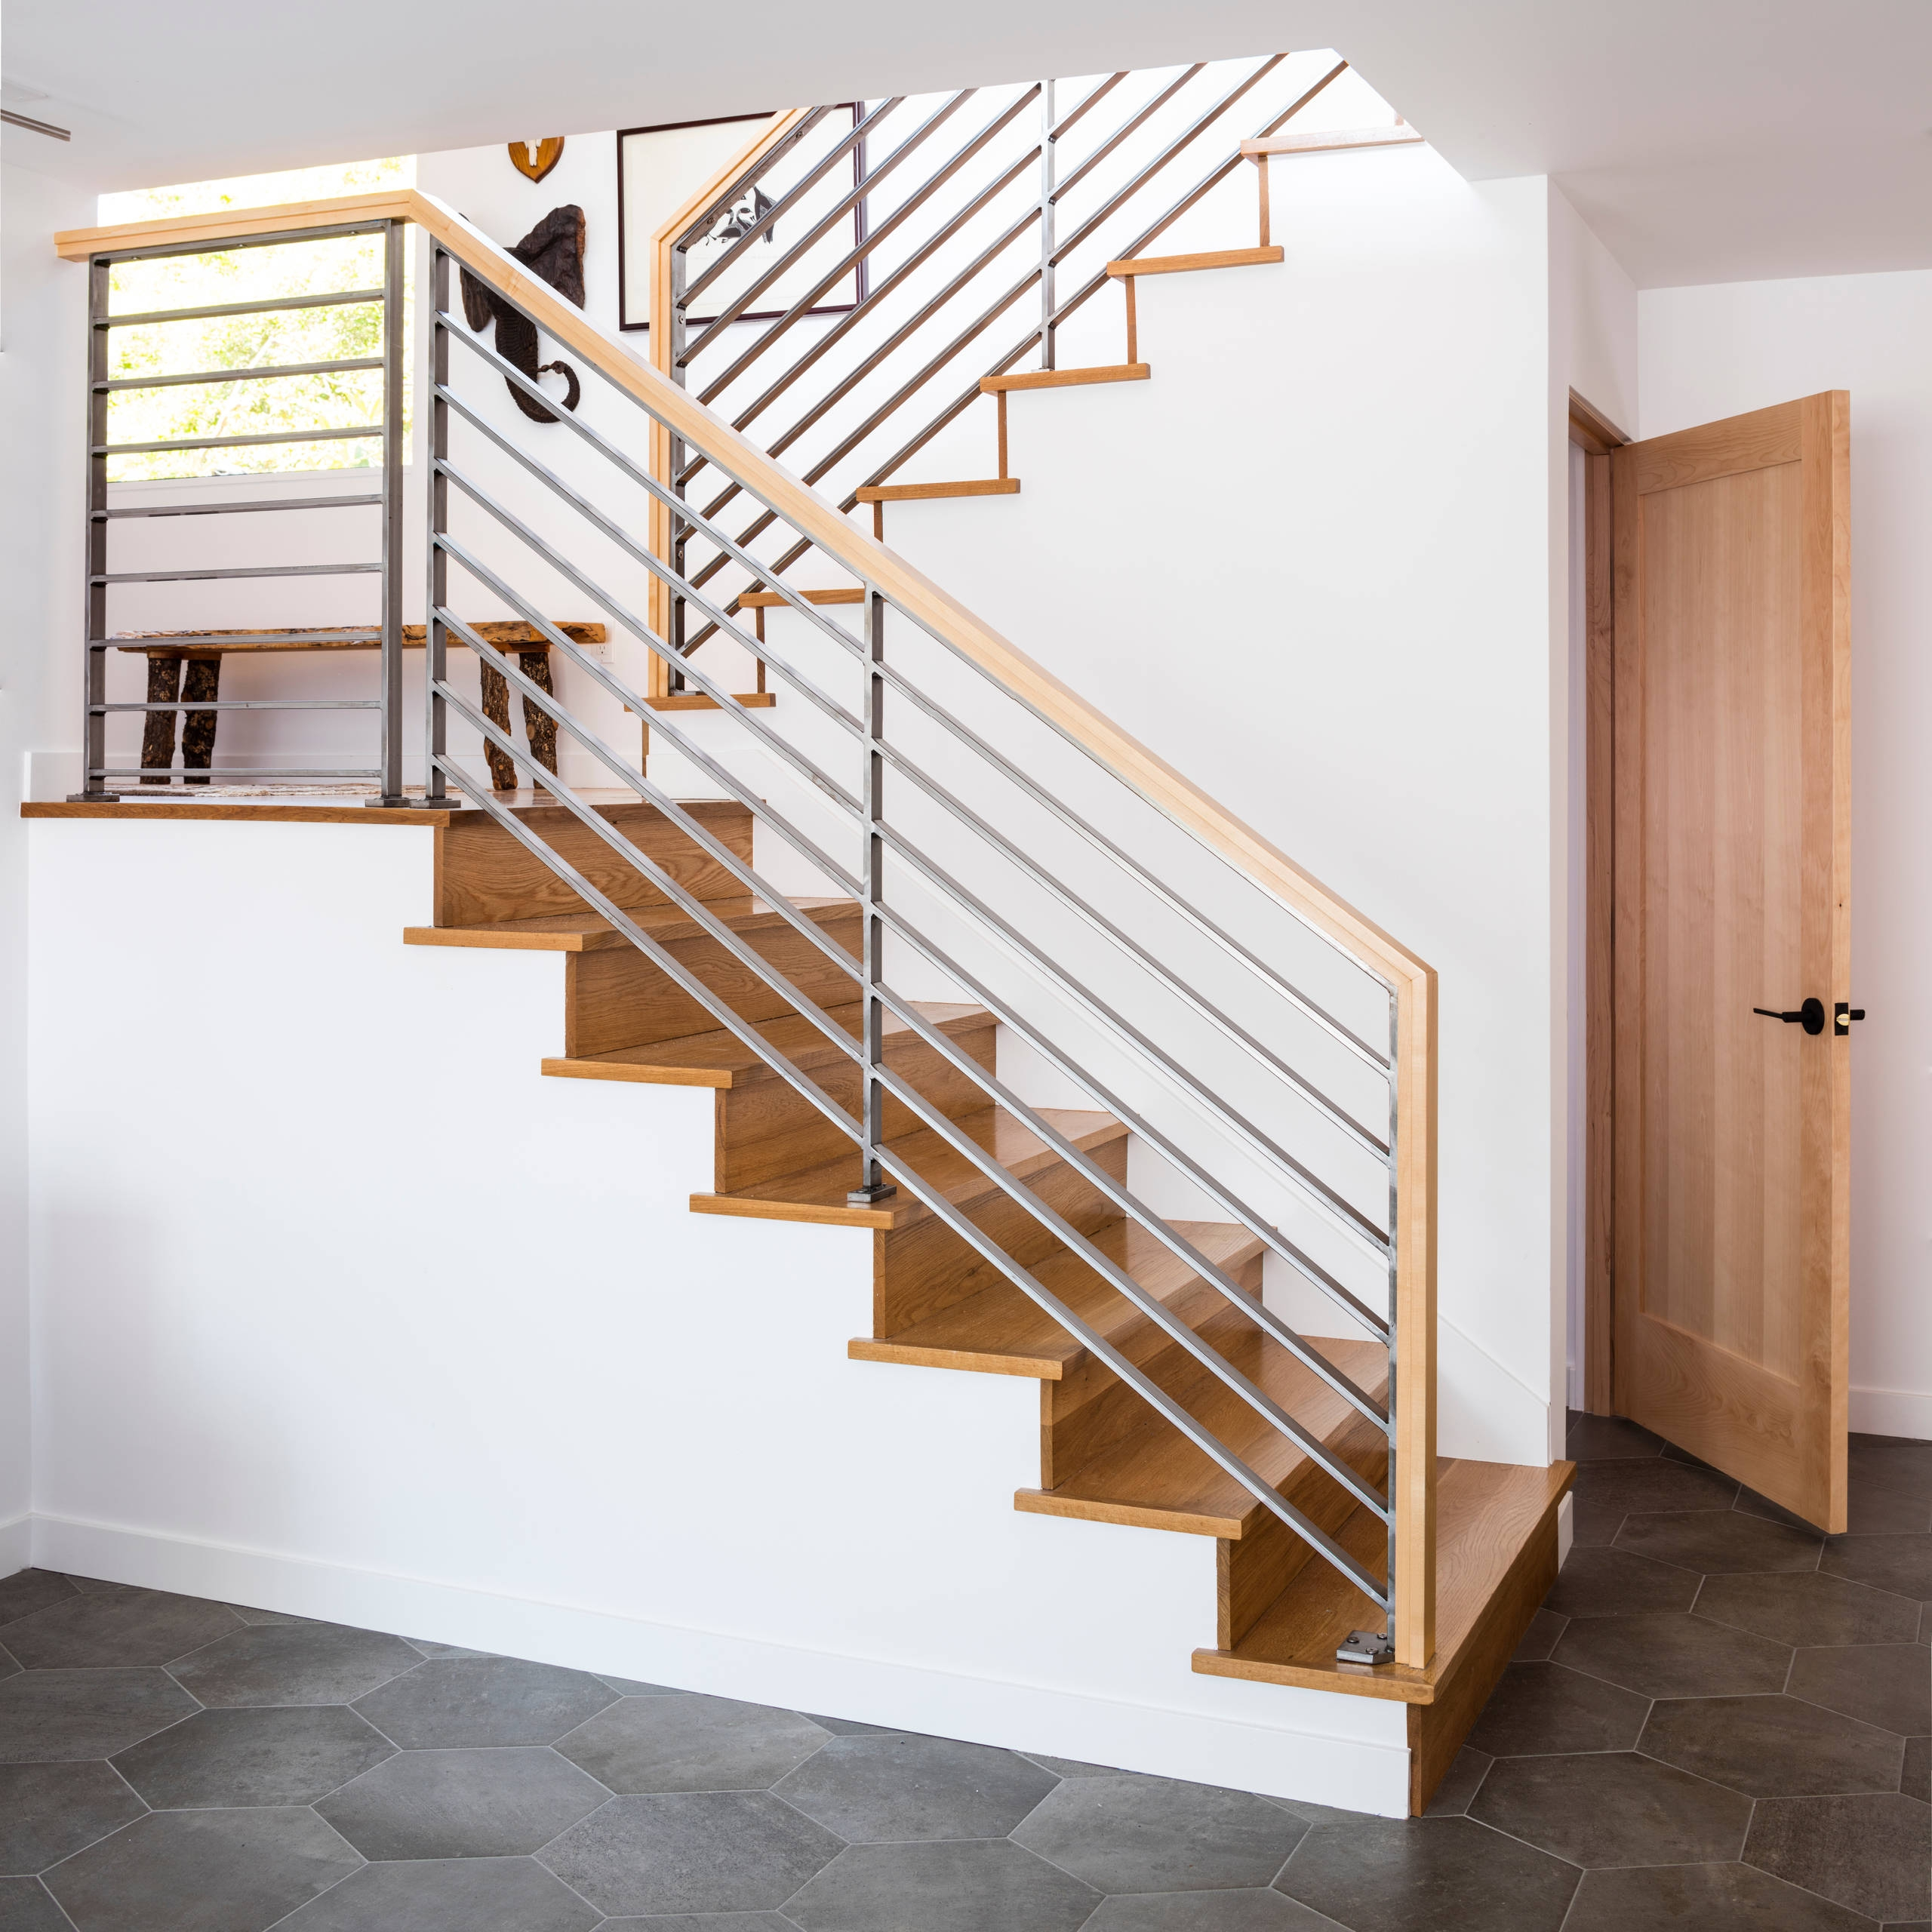 75 Beautiful Mid Century Modern Staircase Pictures Ideas   Mid Century Modern Stairs   Modern Craftsman   Design   Modern Middle House   Industrial Modern   Lighting